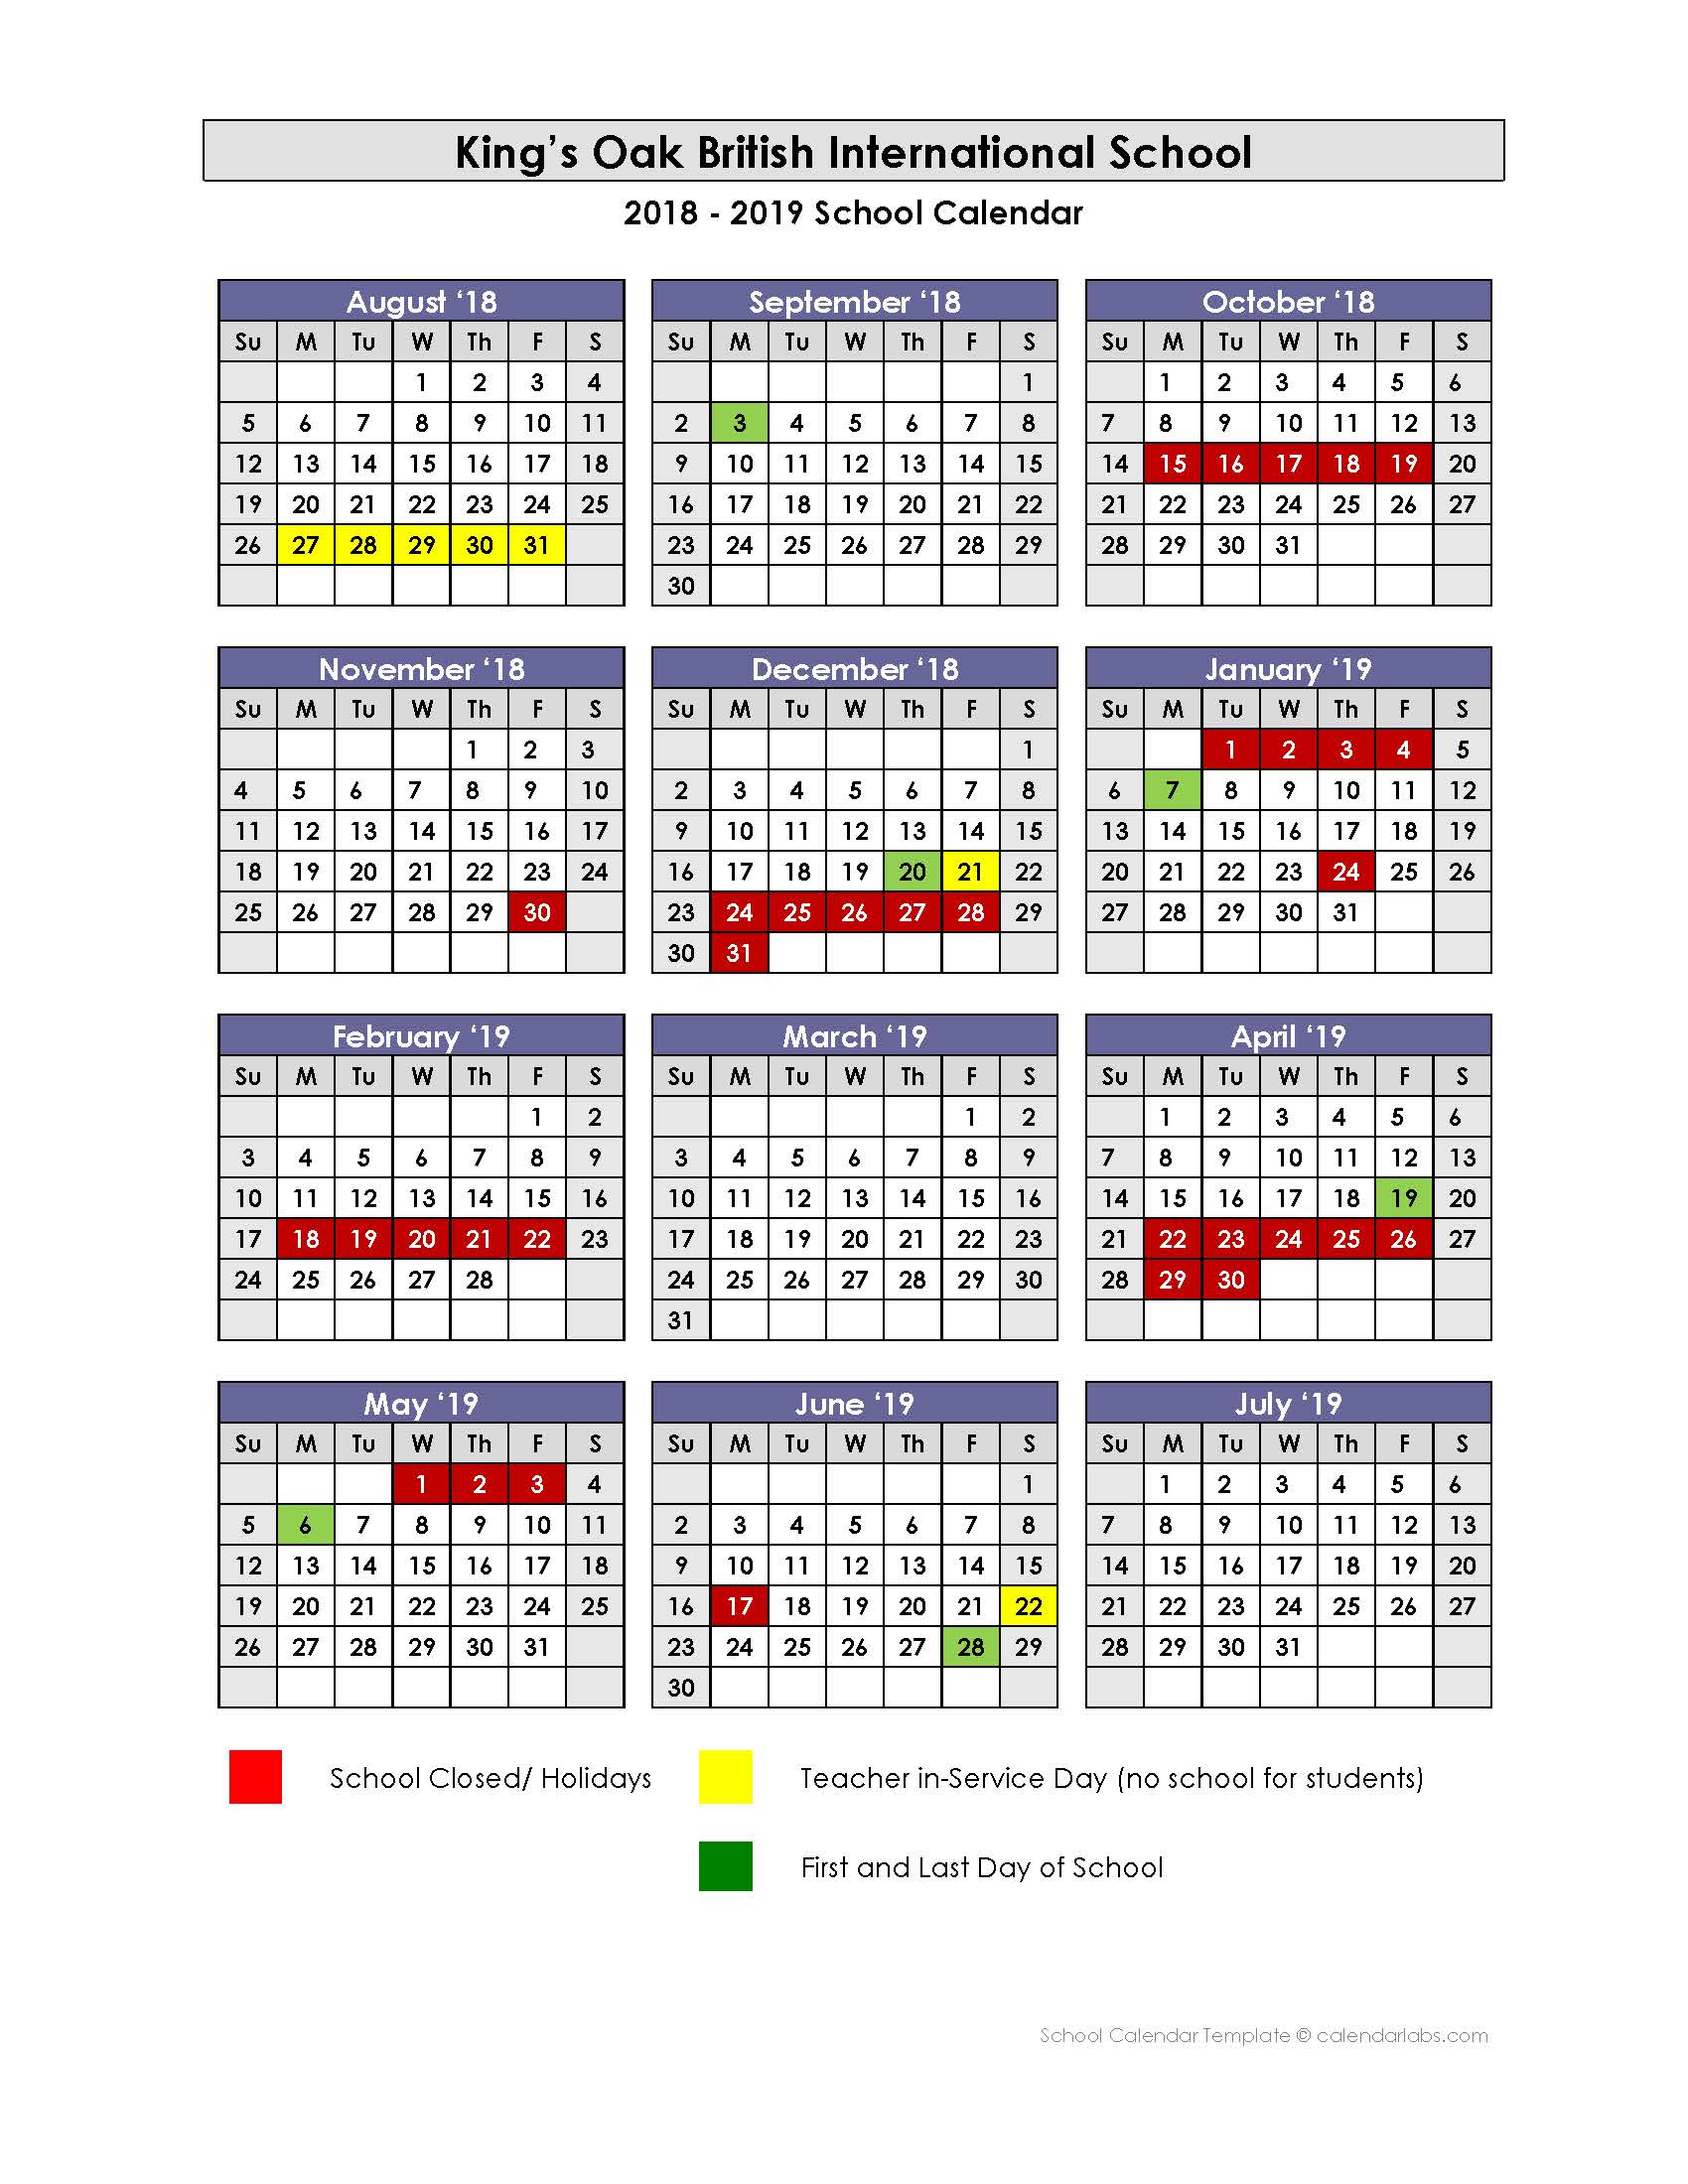 British Calendar 2019 Academic Calendar | King's Oak British International School